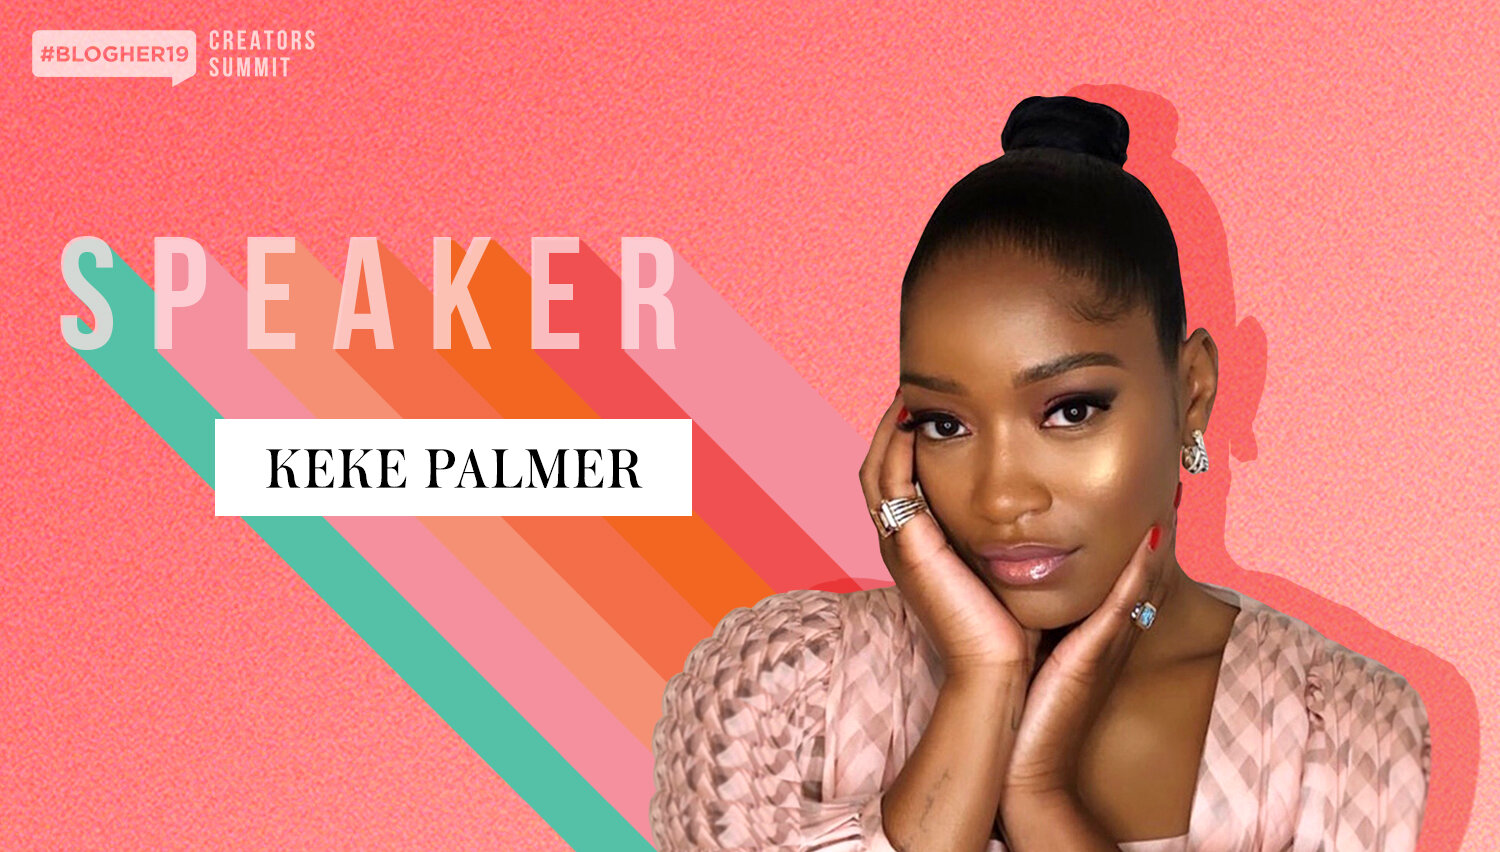 Keke Palmer takes the mainstage on Day One of #BlogHer19 Creators Summit - The actress, activist, musical artist, author, humanitarian, and passionate voice for her generation will treat attendees to a personal interview about growing up in front of the camera, how she avoided being boxed in to just one passion and the importance of inclusion in the media.